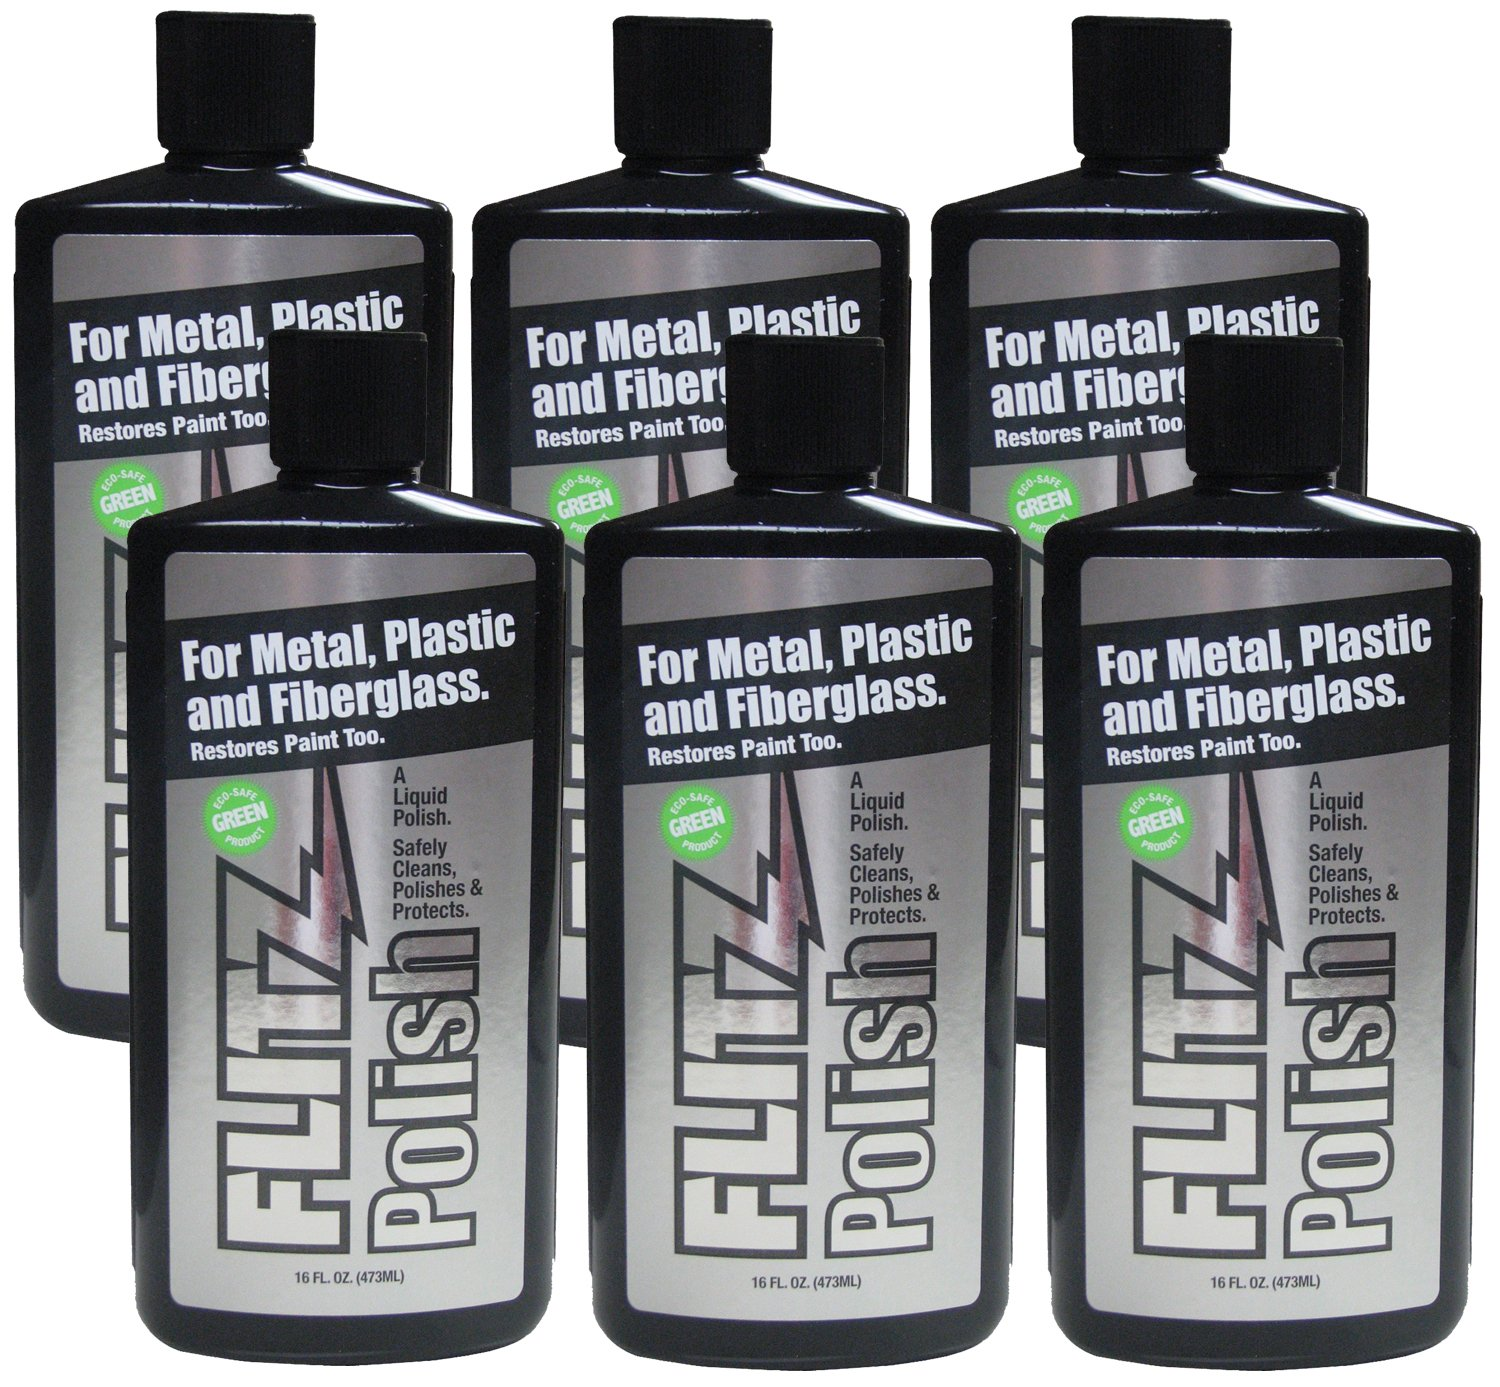 Flitz LQ 04506 Green Metal, Plastic and Fiberglass Polish Liquid, 16 oz. Bottle